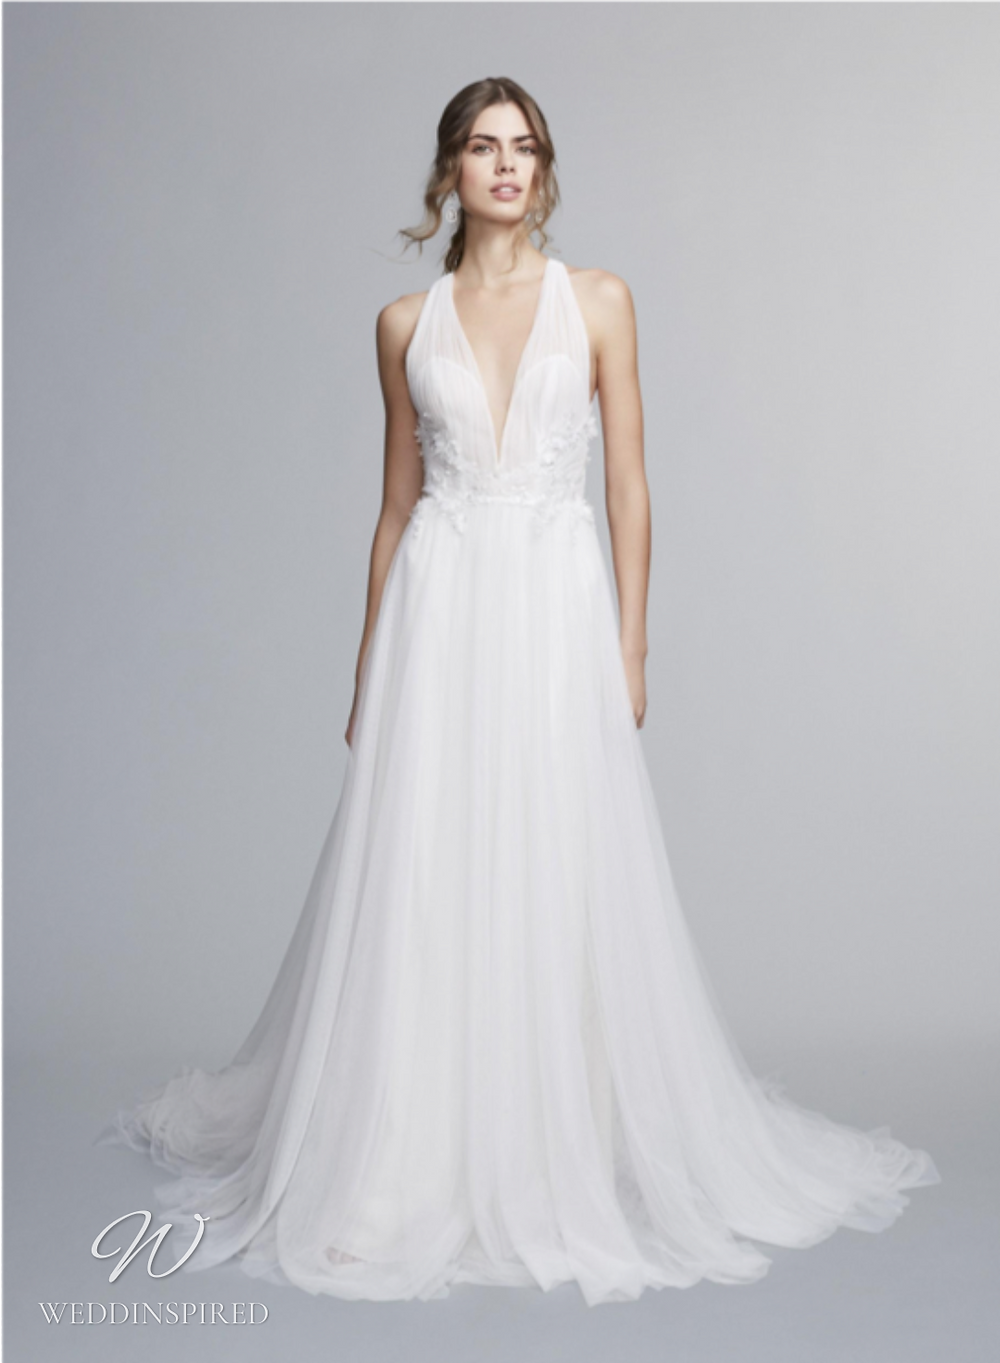 A Marchesa Notte Fall 2021 flowy chiffon halterneck A-line wedding dress